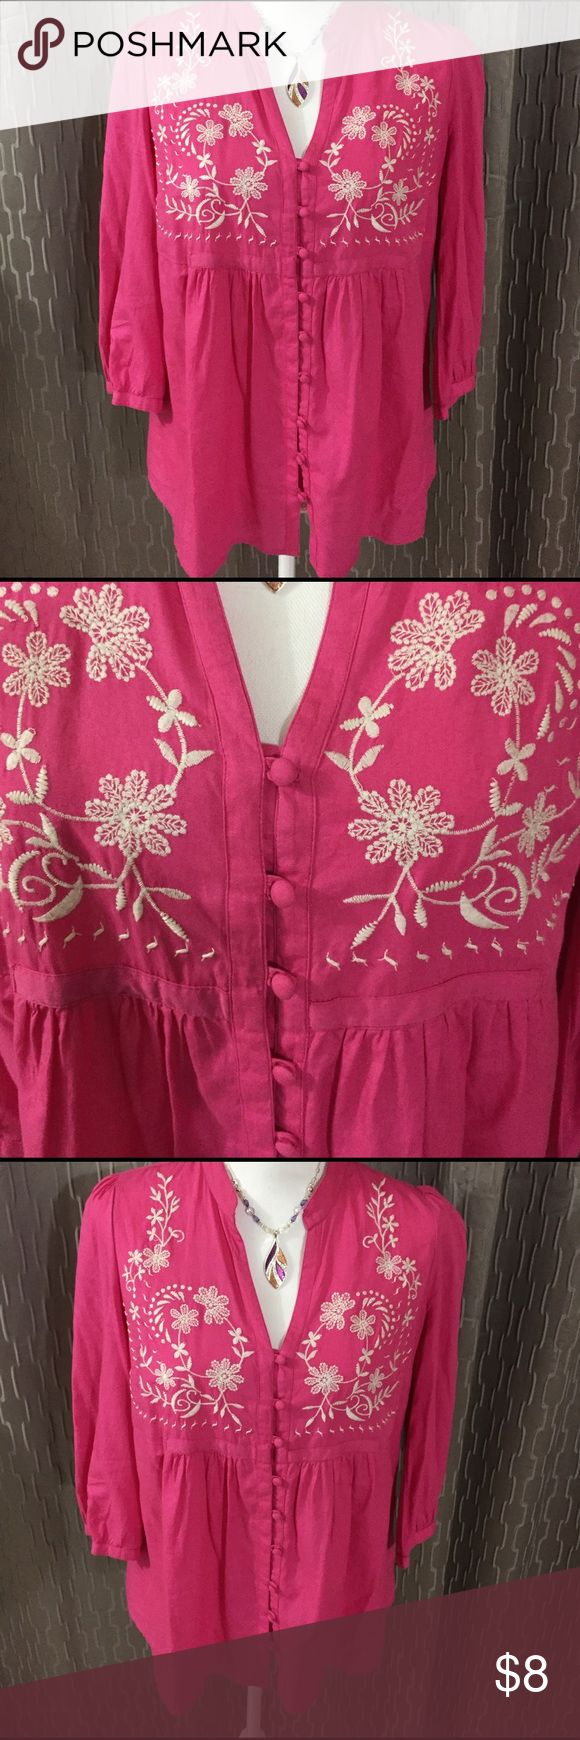 Hot Pink Top Beautiful flowered pattern, with a v neck, buttons down the front, 3/4 length sleeves  % cotton, in great condition. St. John's Bay Tops Blouses